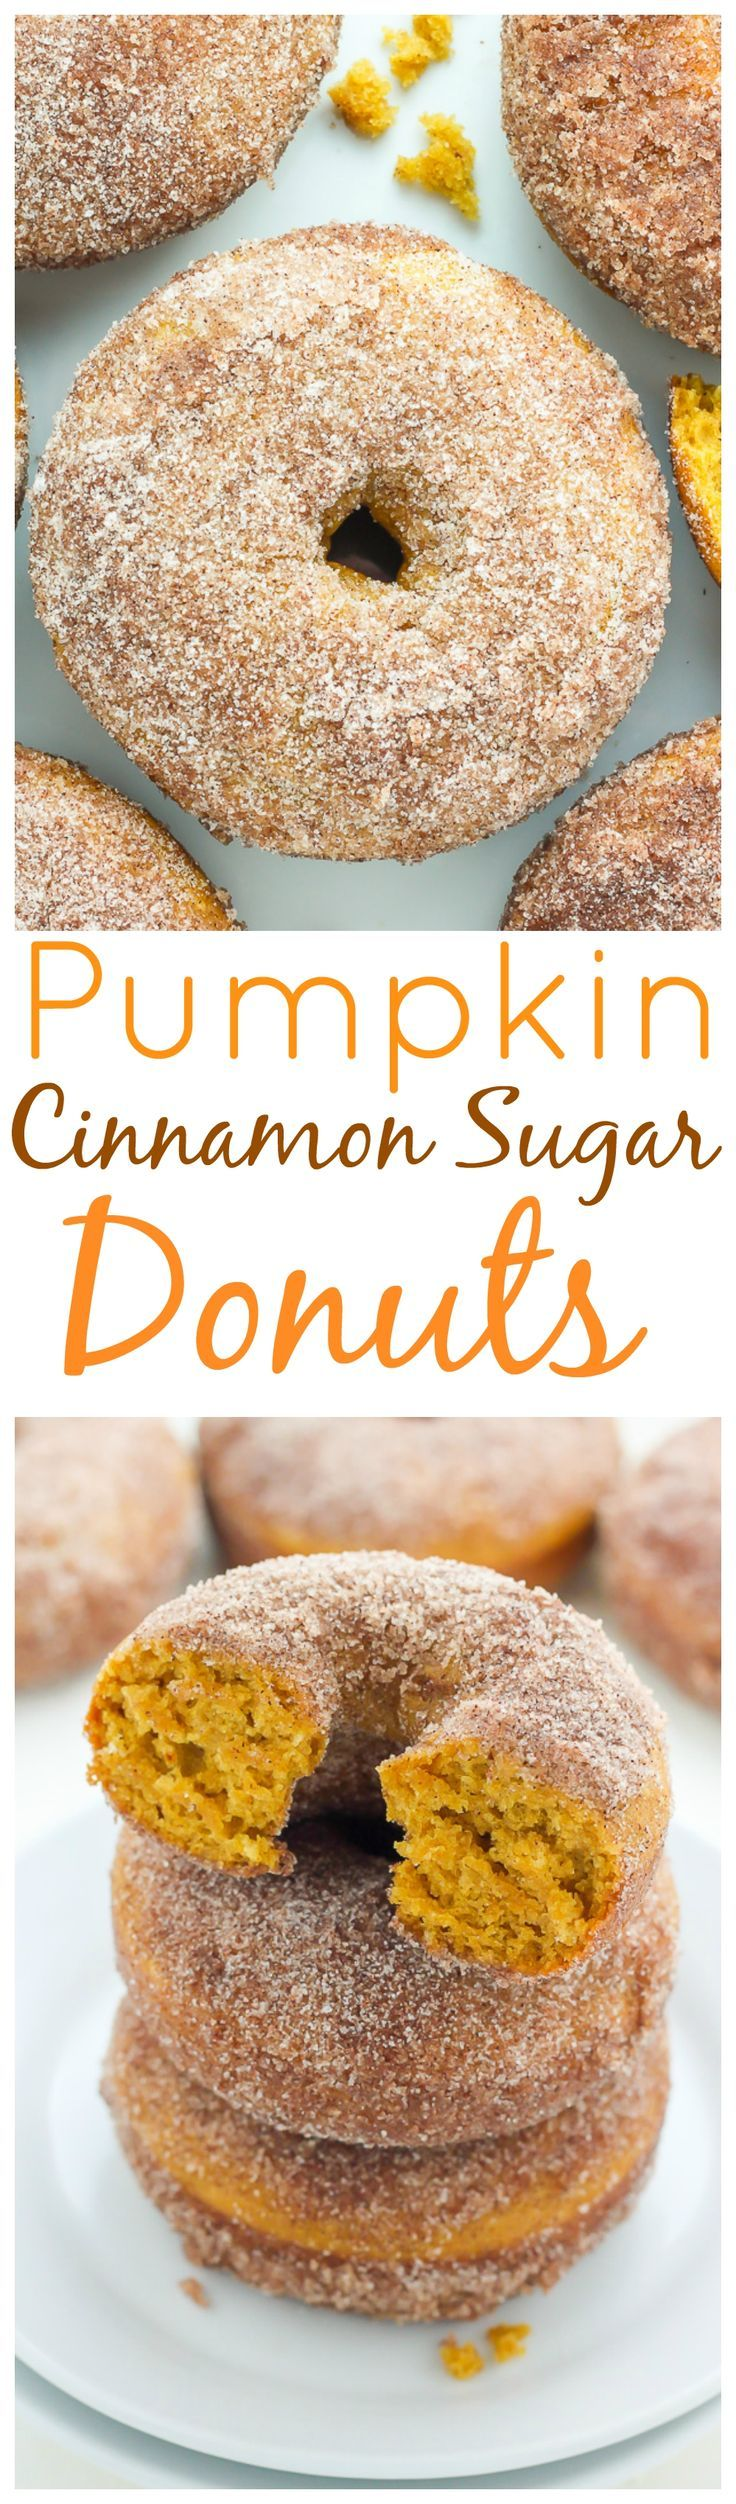 Pumpkin Cinnamon Sugar Donuts – super soft, fluffy, and loaded with pumpkin flavor! The best part? Theyre ready in 20 minutes!